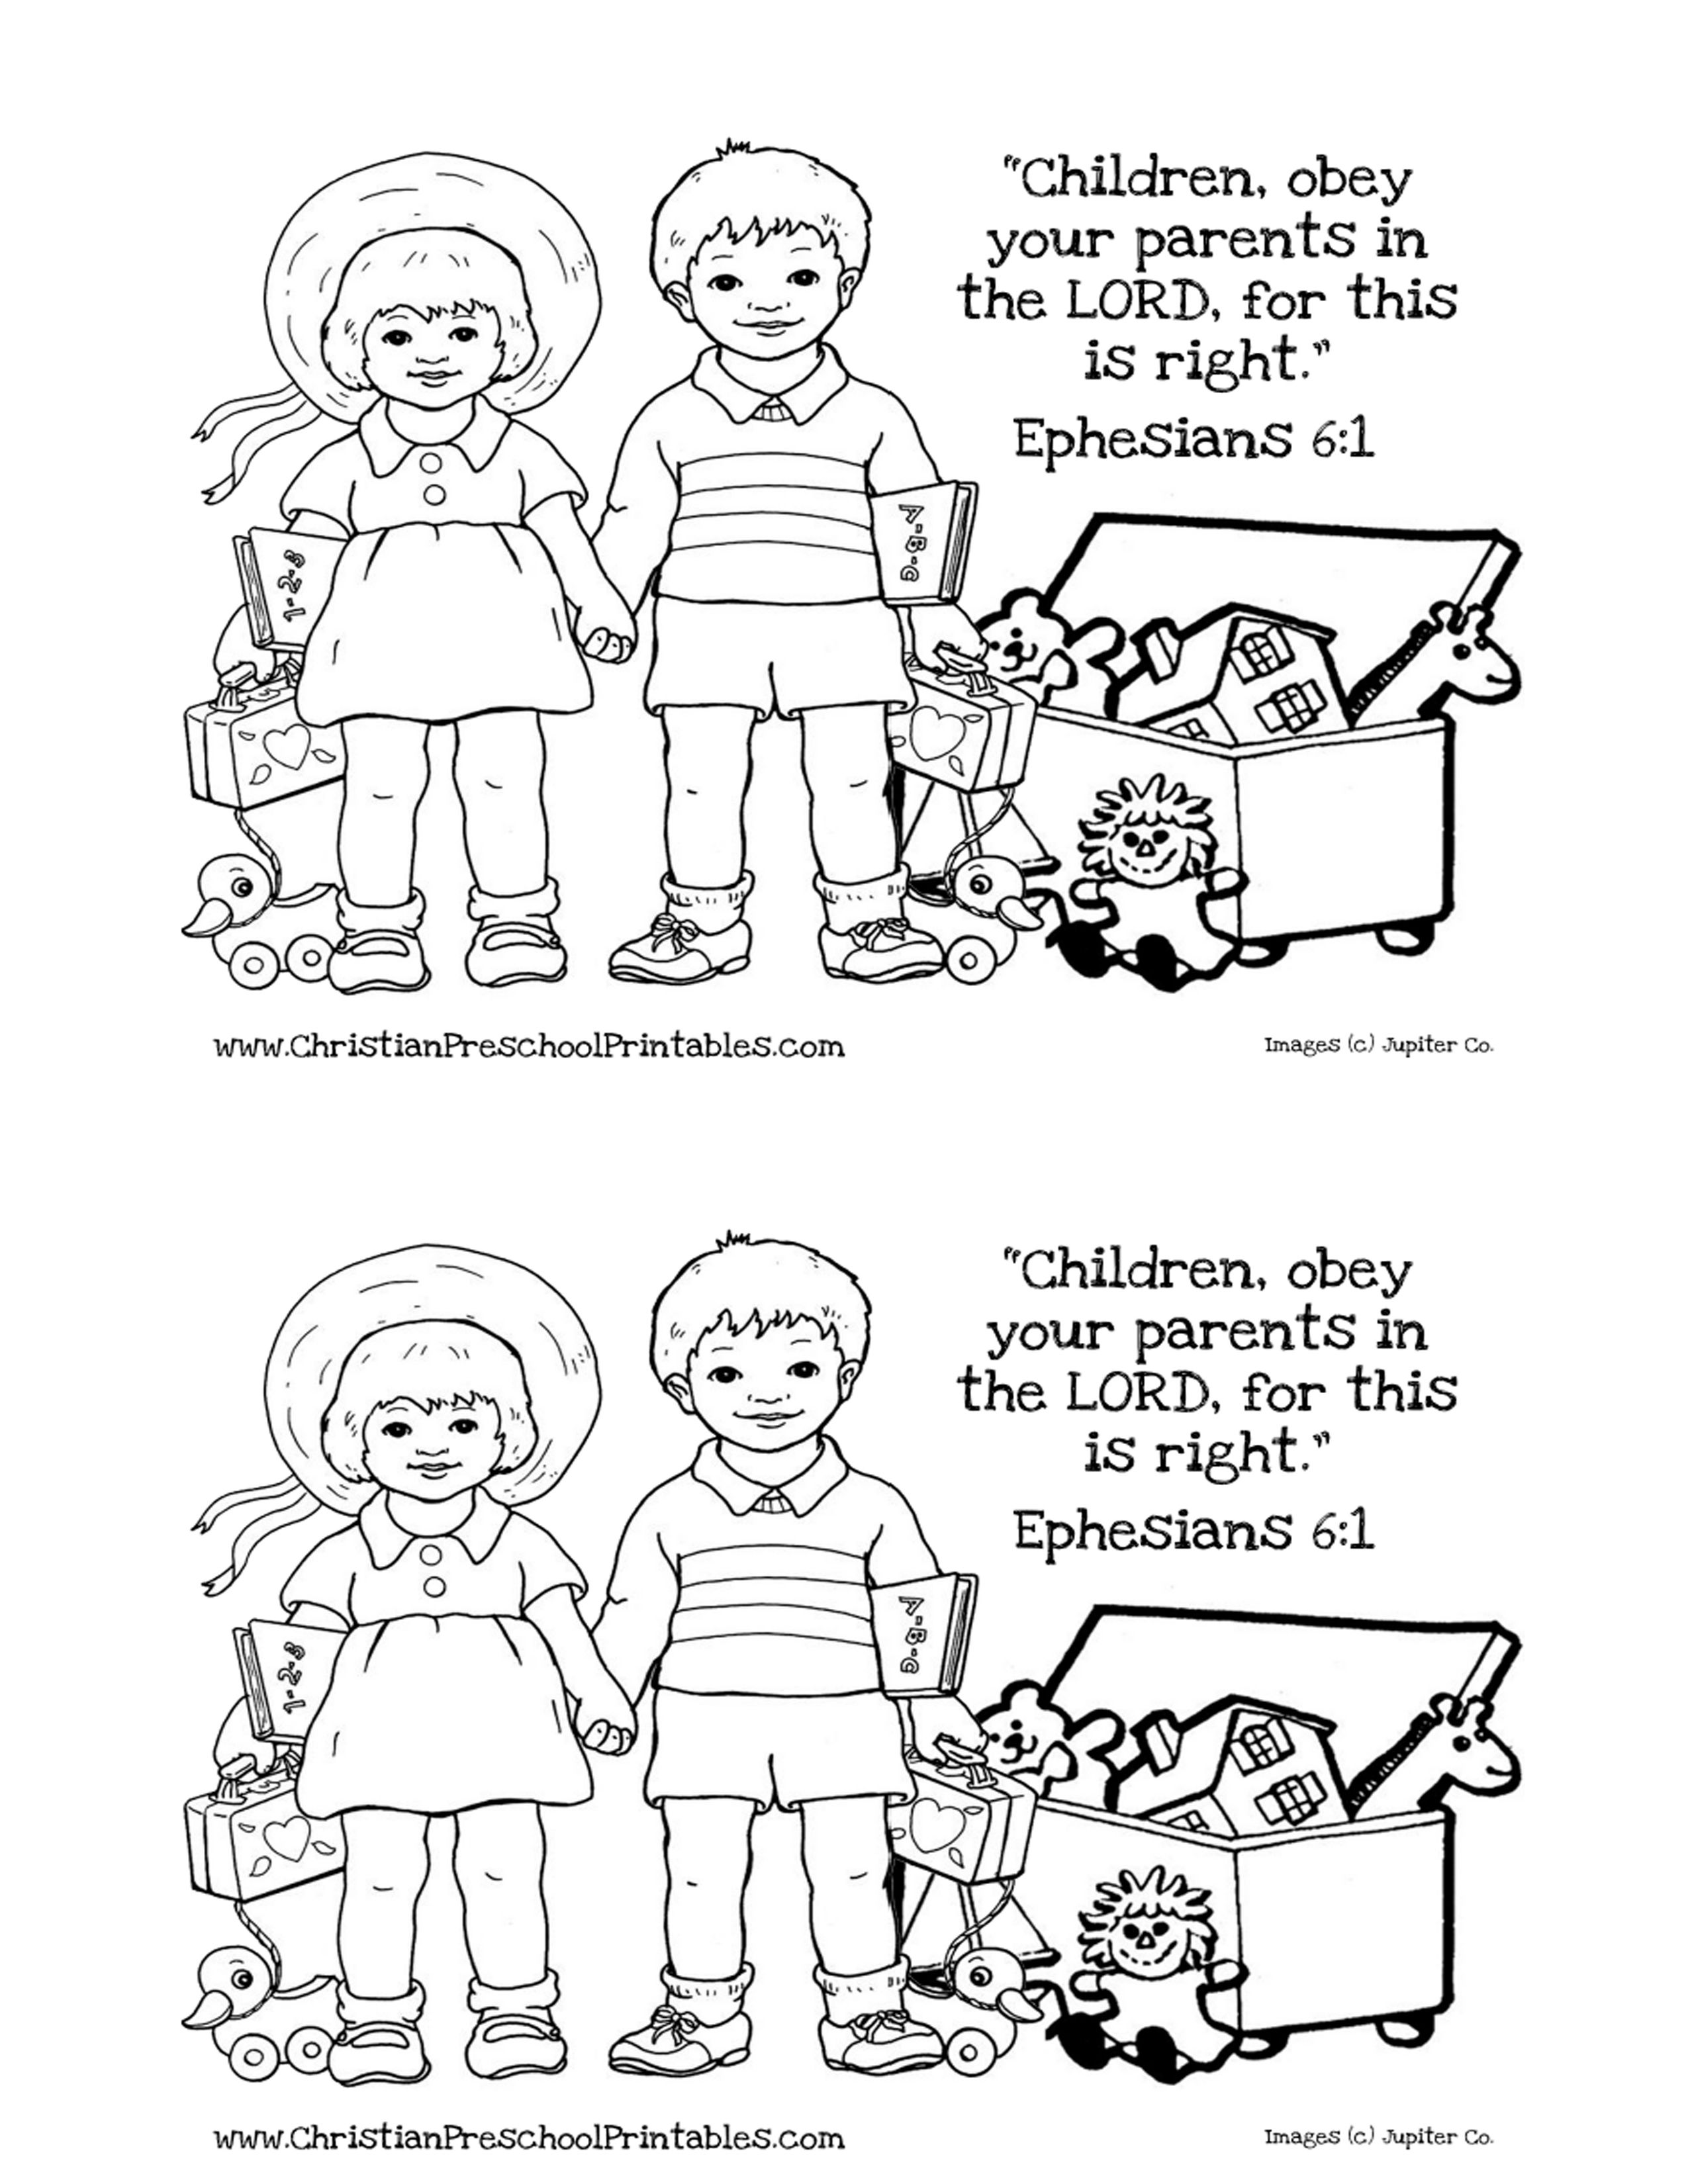 Pin by Julie Galloway Benge on Children's Church